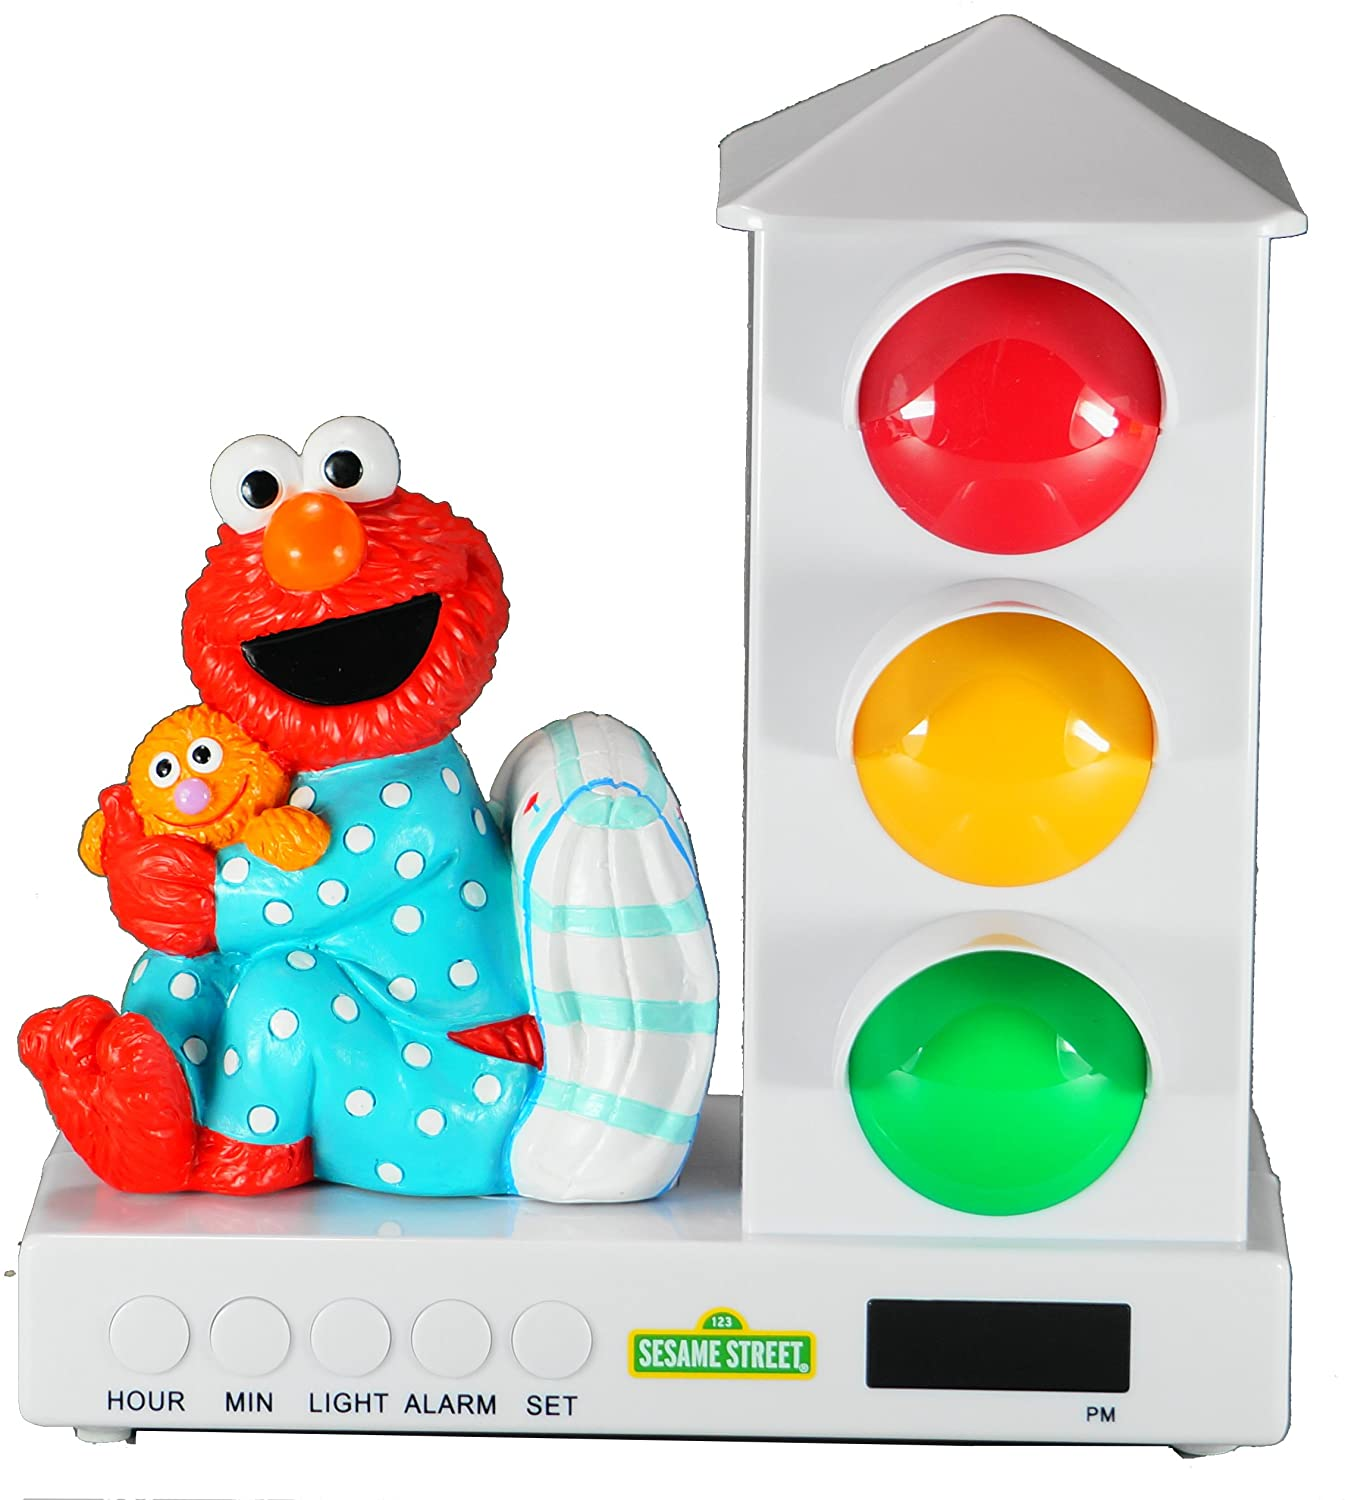 It's About Time Stoplight Sleep Enhancing Alarm Clock